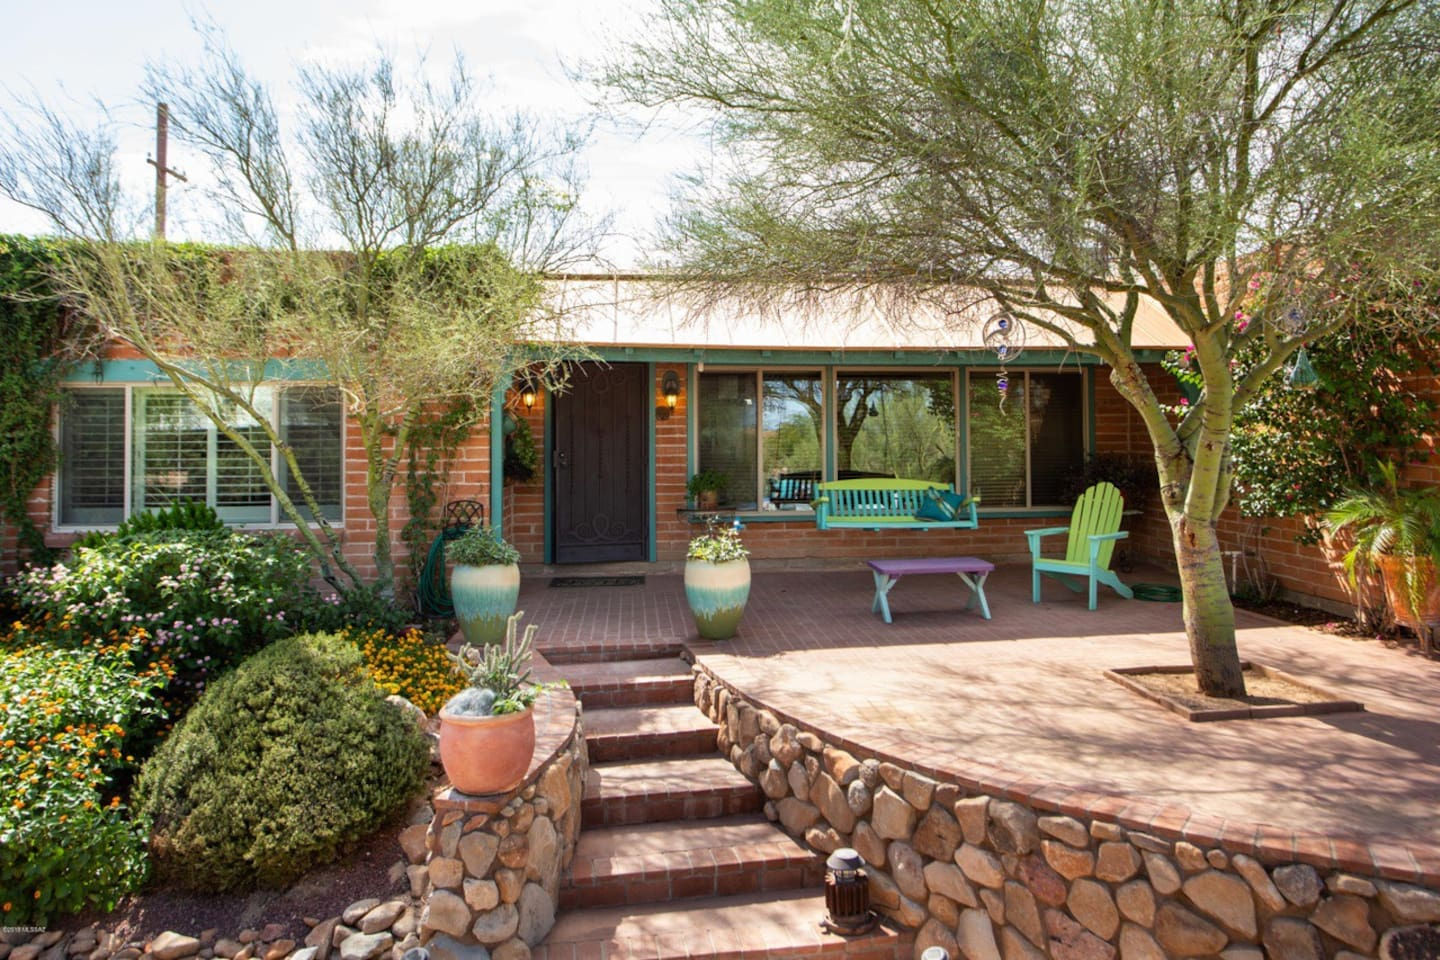 Secluded - yet 7 mins to Freeway;  - custom stonework front patio with porch swing.